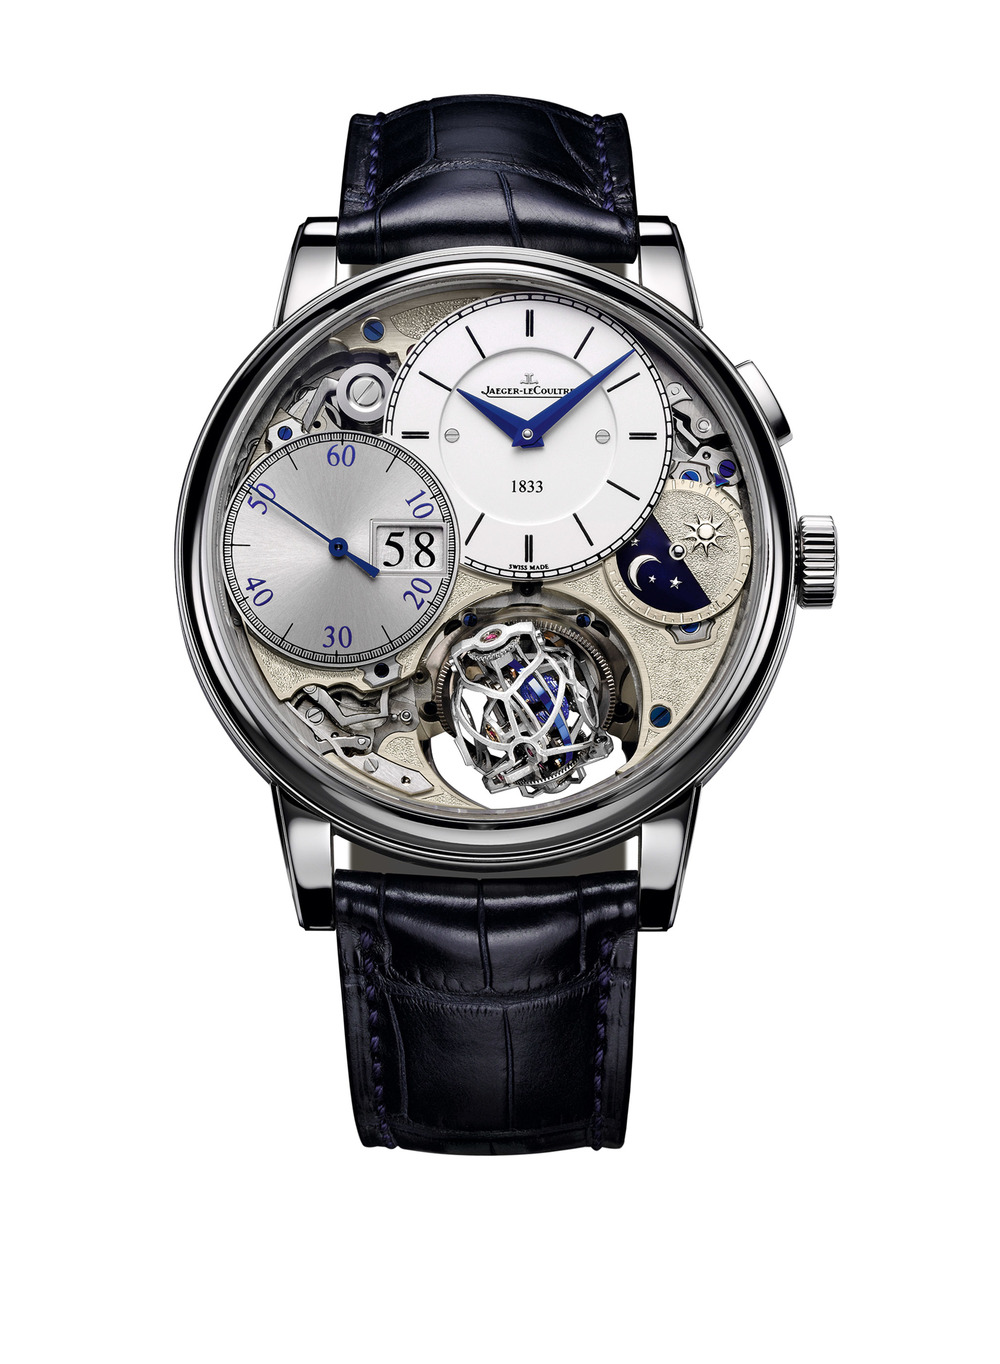 The Master Grande Tradition Gyrotourbillon 3 Jubilee from the Hybris Mechanica collection.